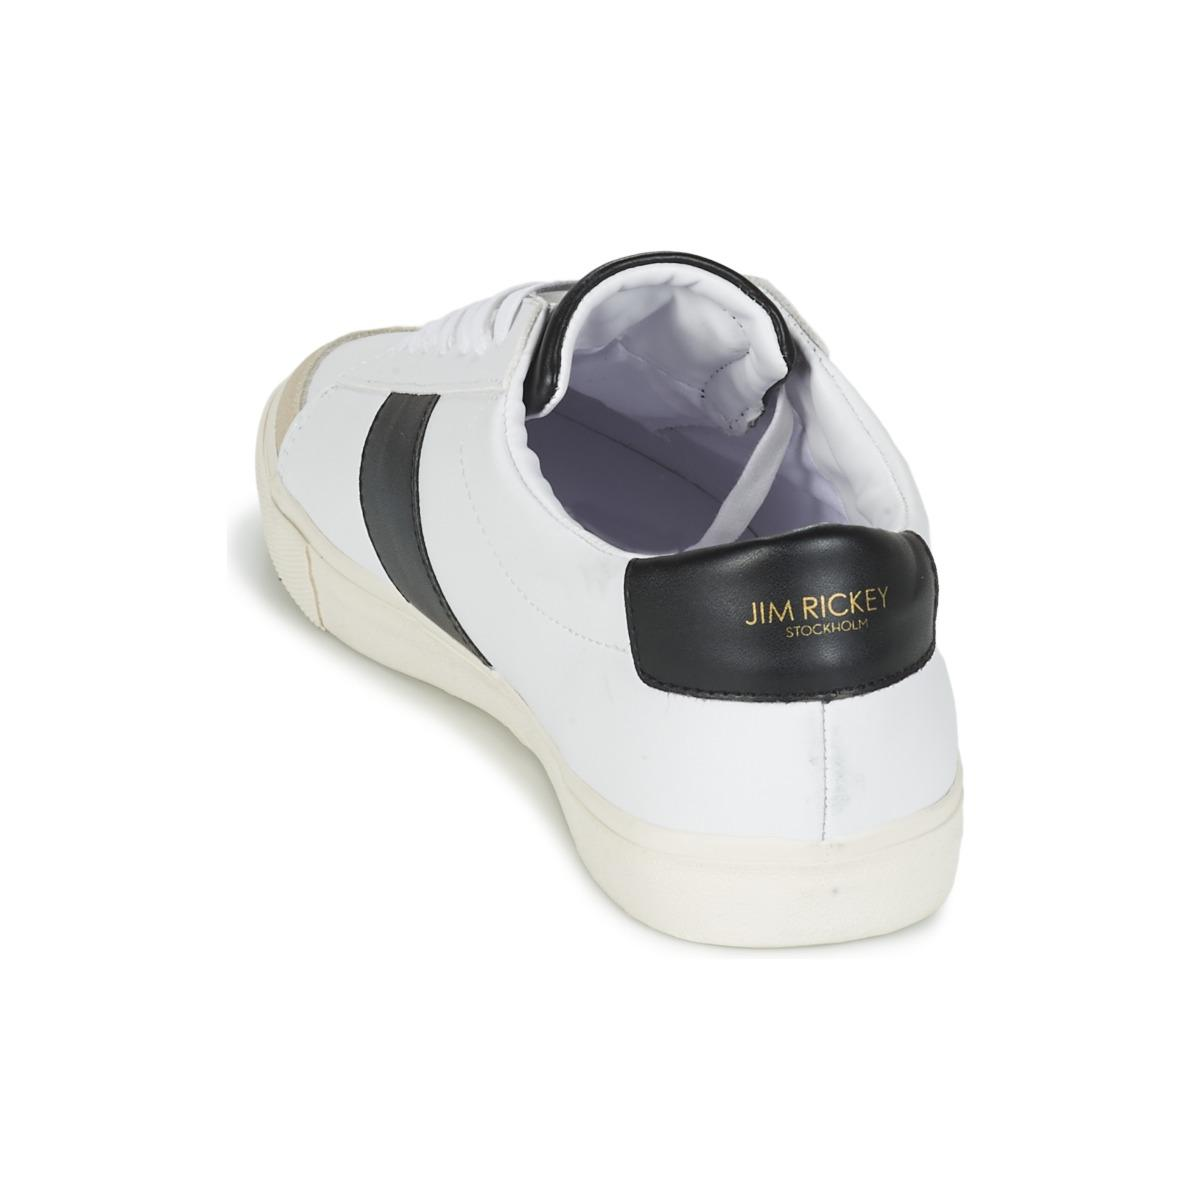 Jim Rickey Synthetic Gusten Shoes (trainers) in White for Men